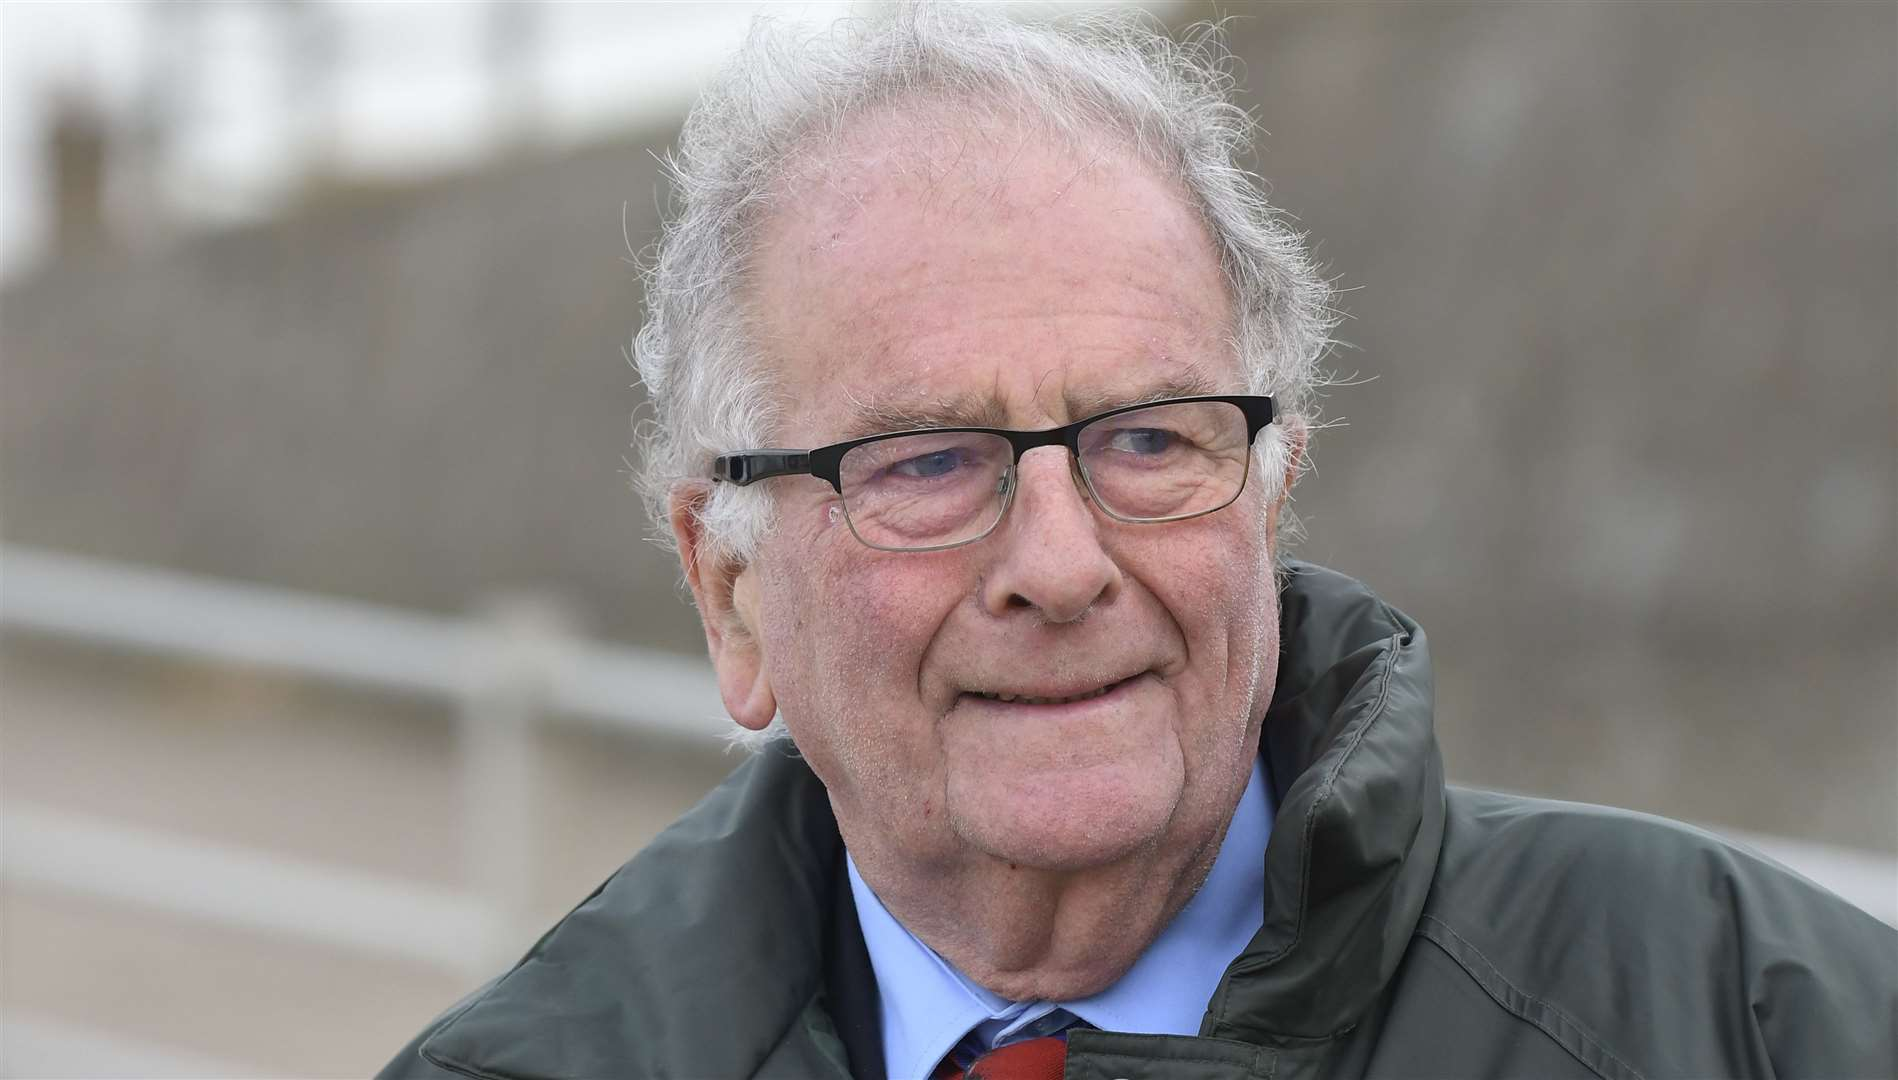 Sir Roger Gale, MP for North Thanet. Picture: Tony Flashman